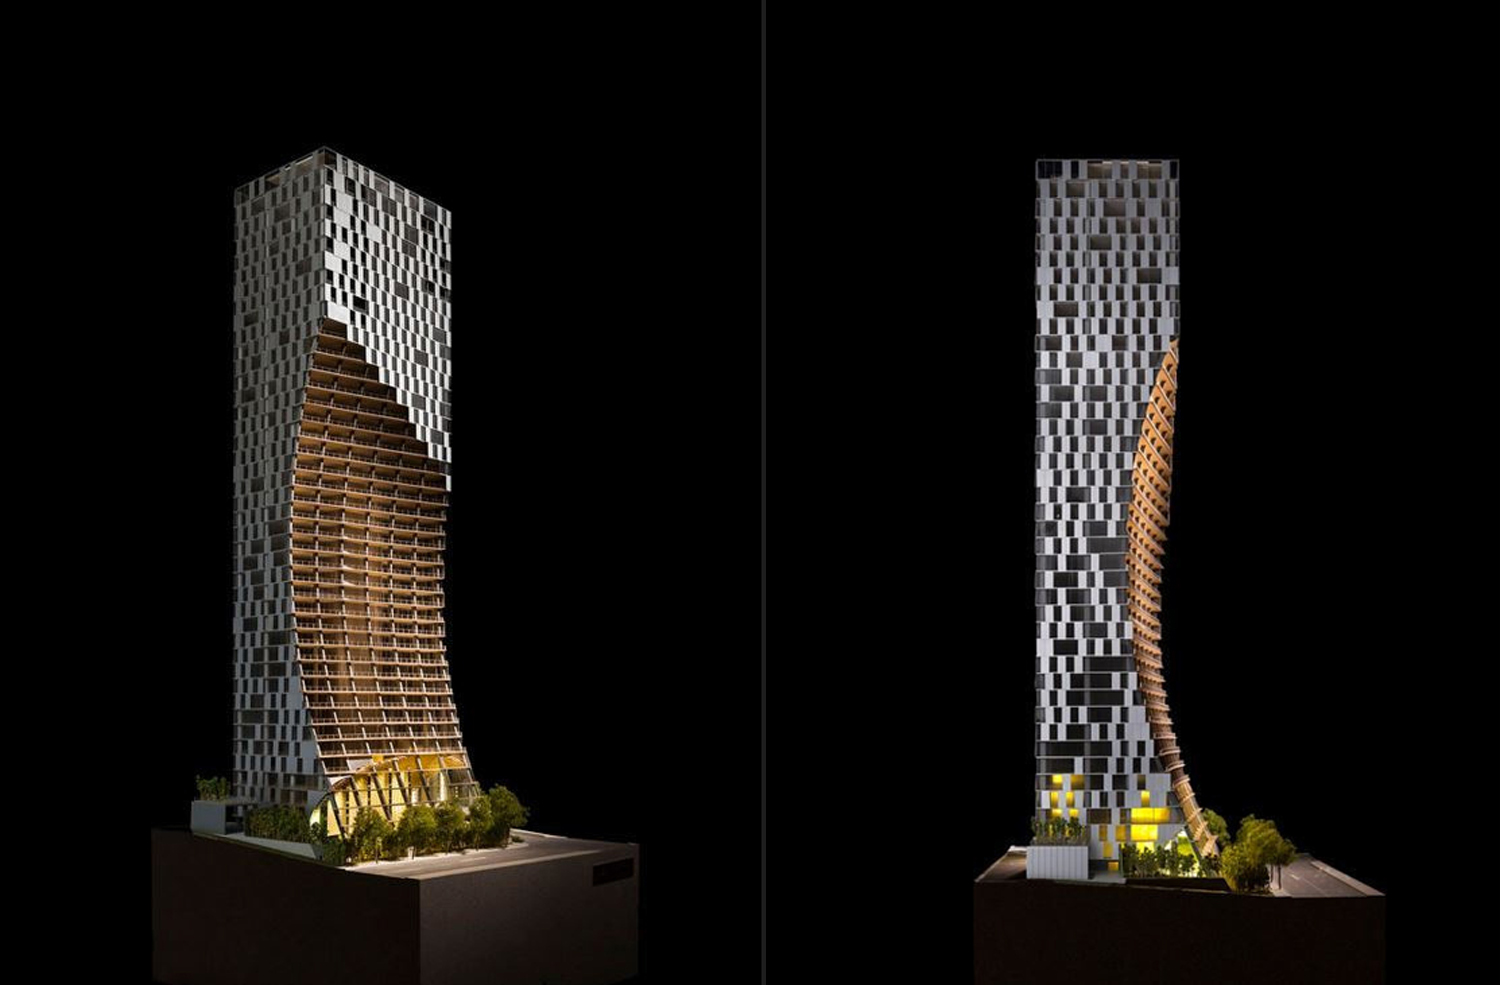 Mixed-Use Skyscraper in Vancouver design by Kengo Kuma